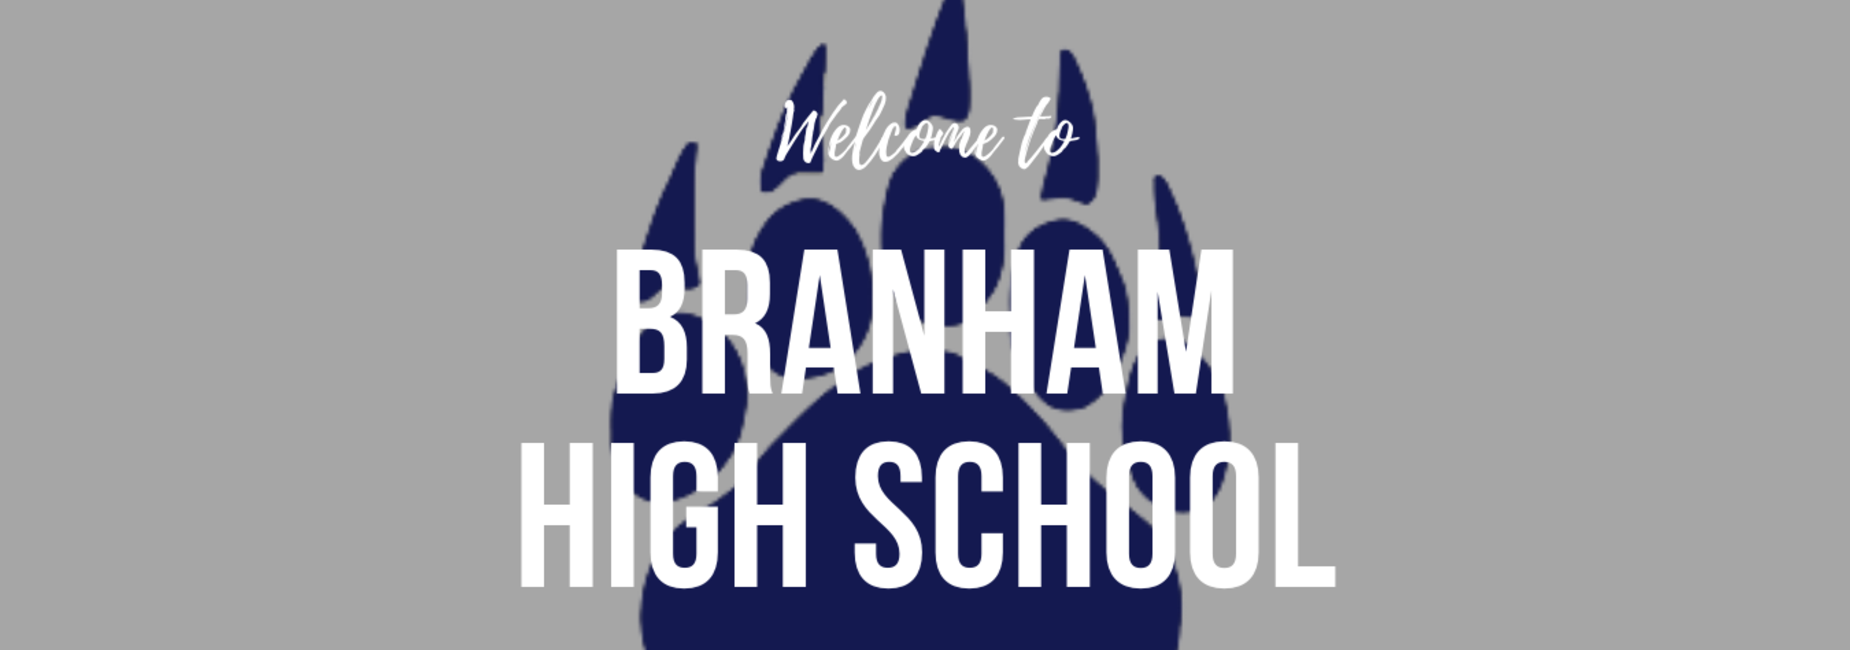 Branham High School